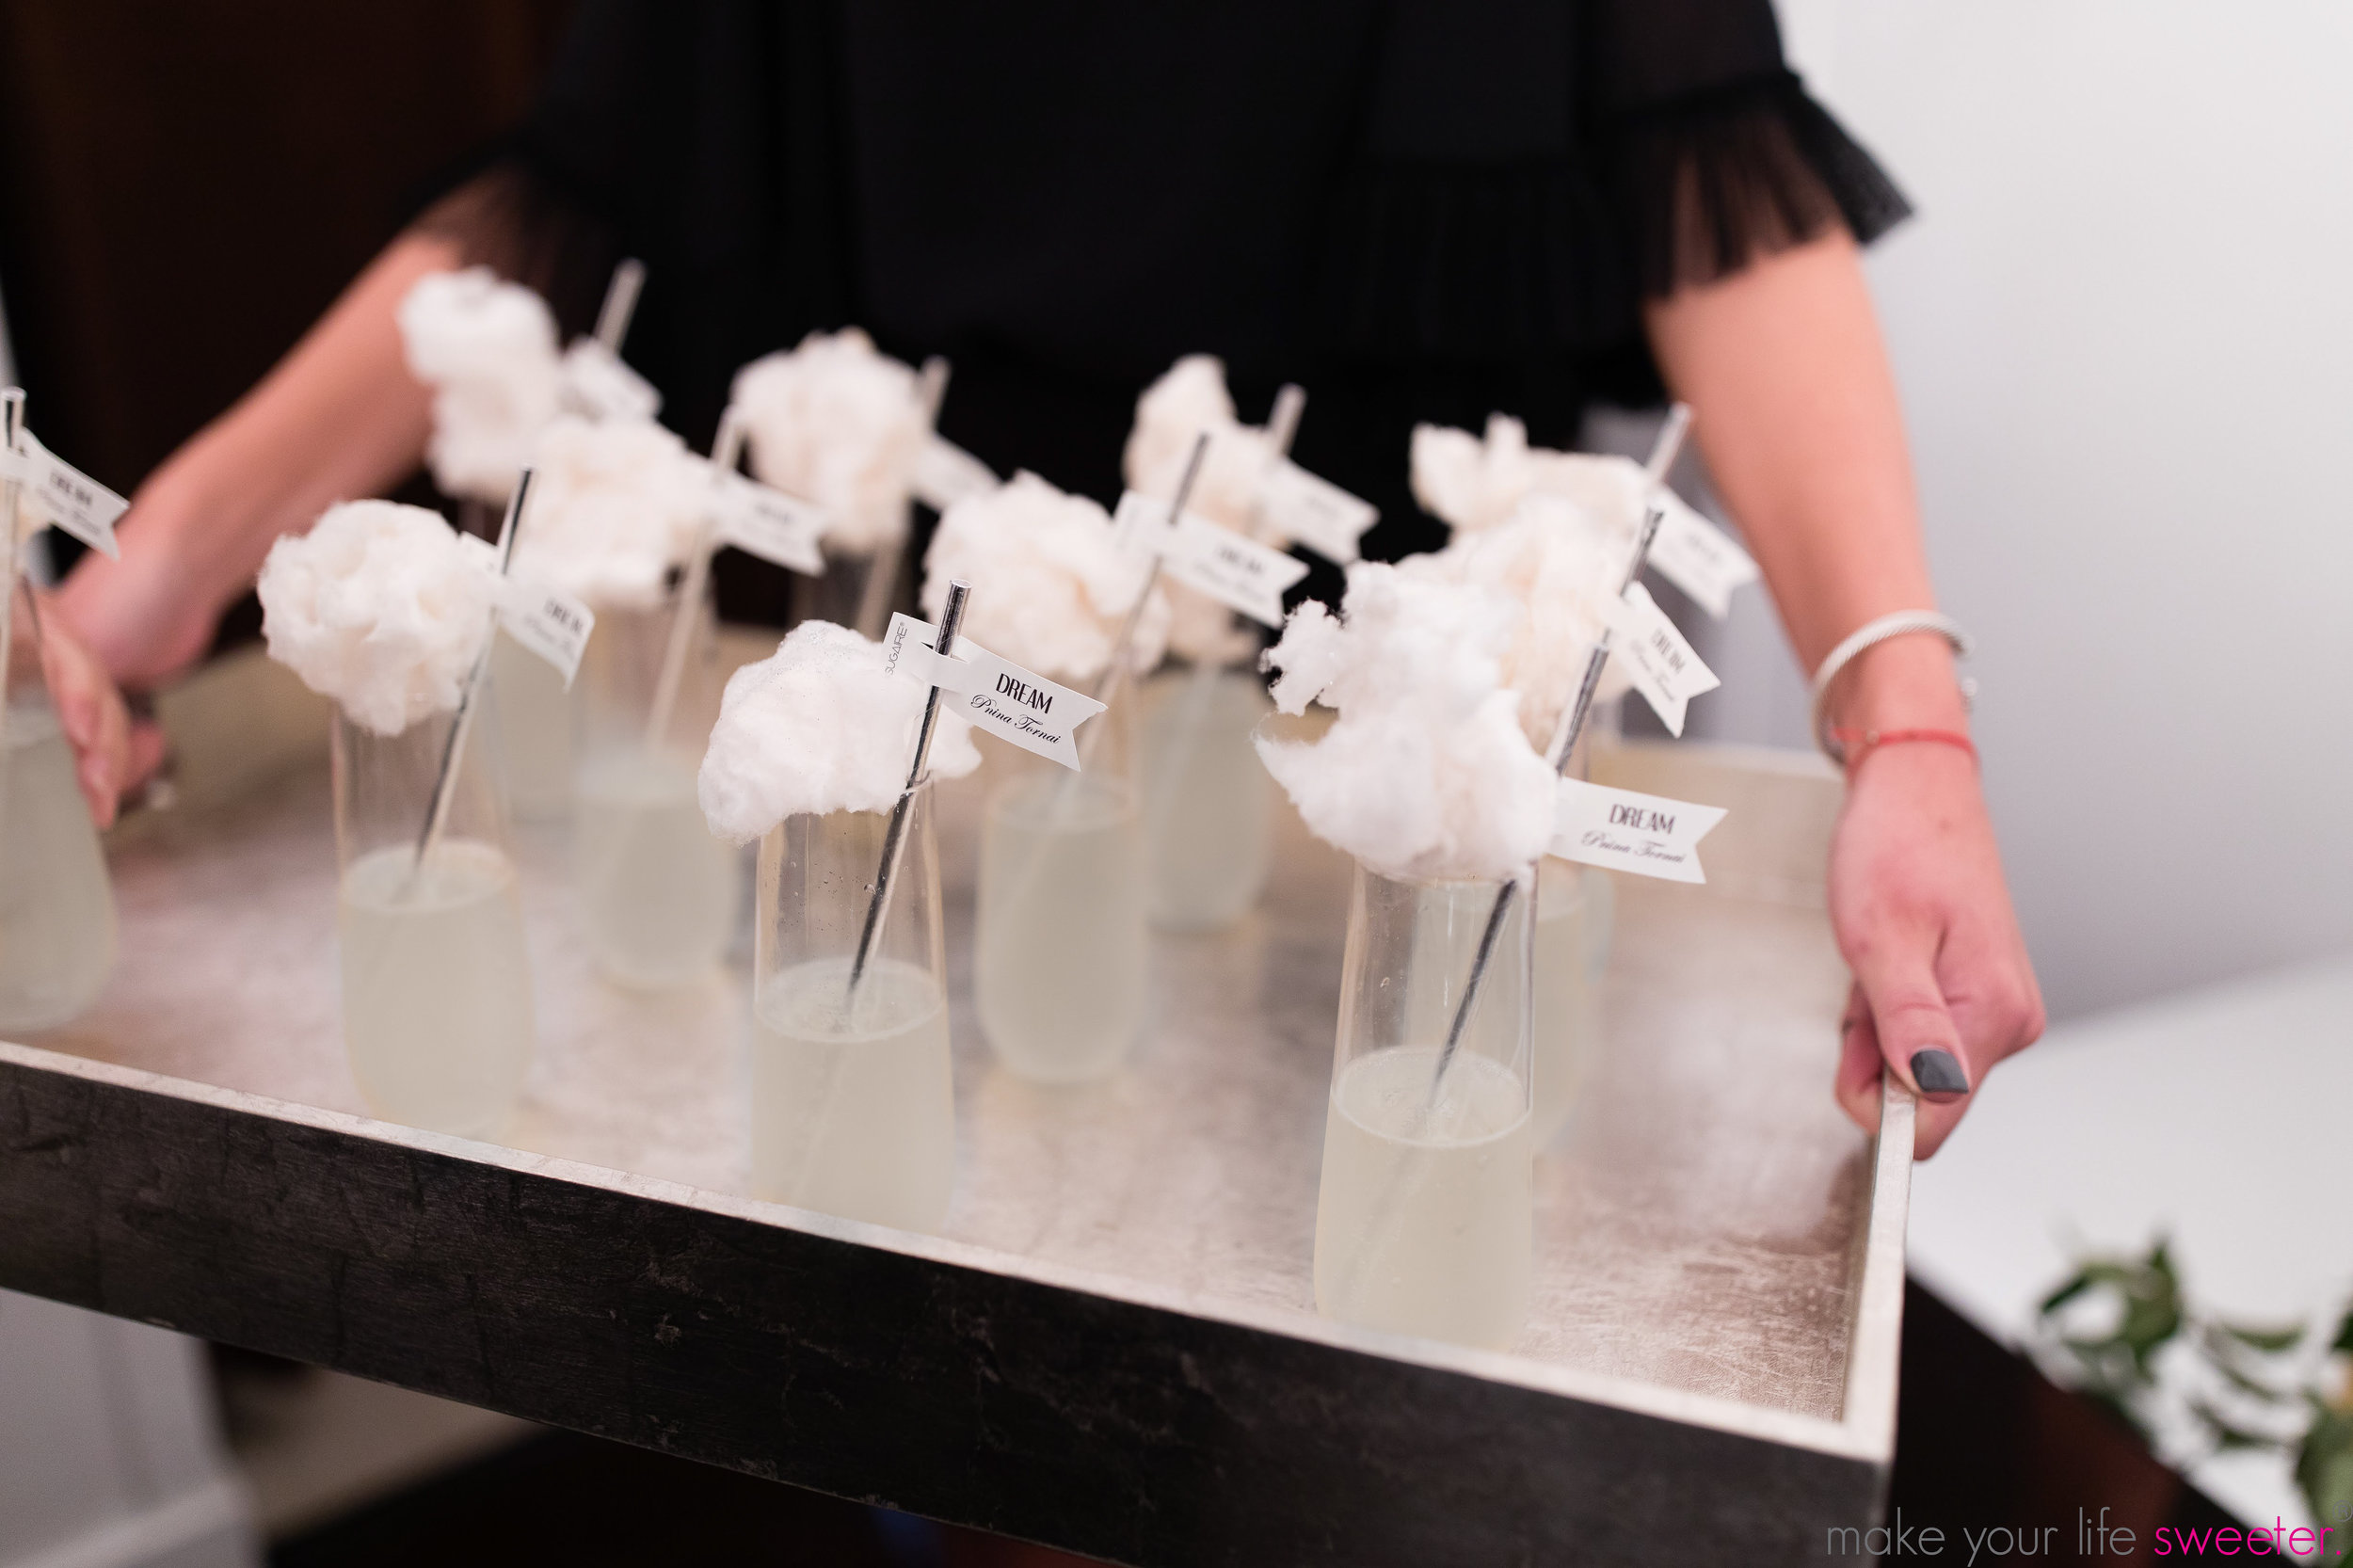 Make Your Life Sweeter Events - Sugaire Organic Cotton Candy Infusion with Customized Hashtag Flags - Kleinfelds Annual Bridal Fashion Show for New York Bridal Fashion Week - The Pnina Tornai Collection